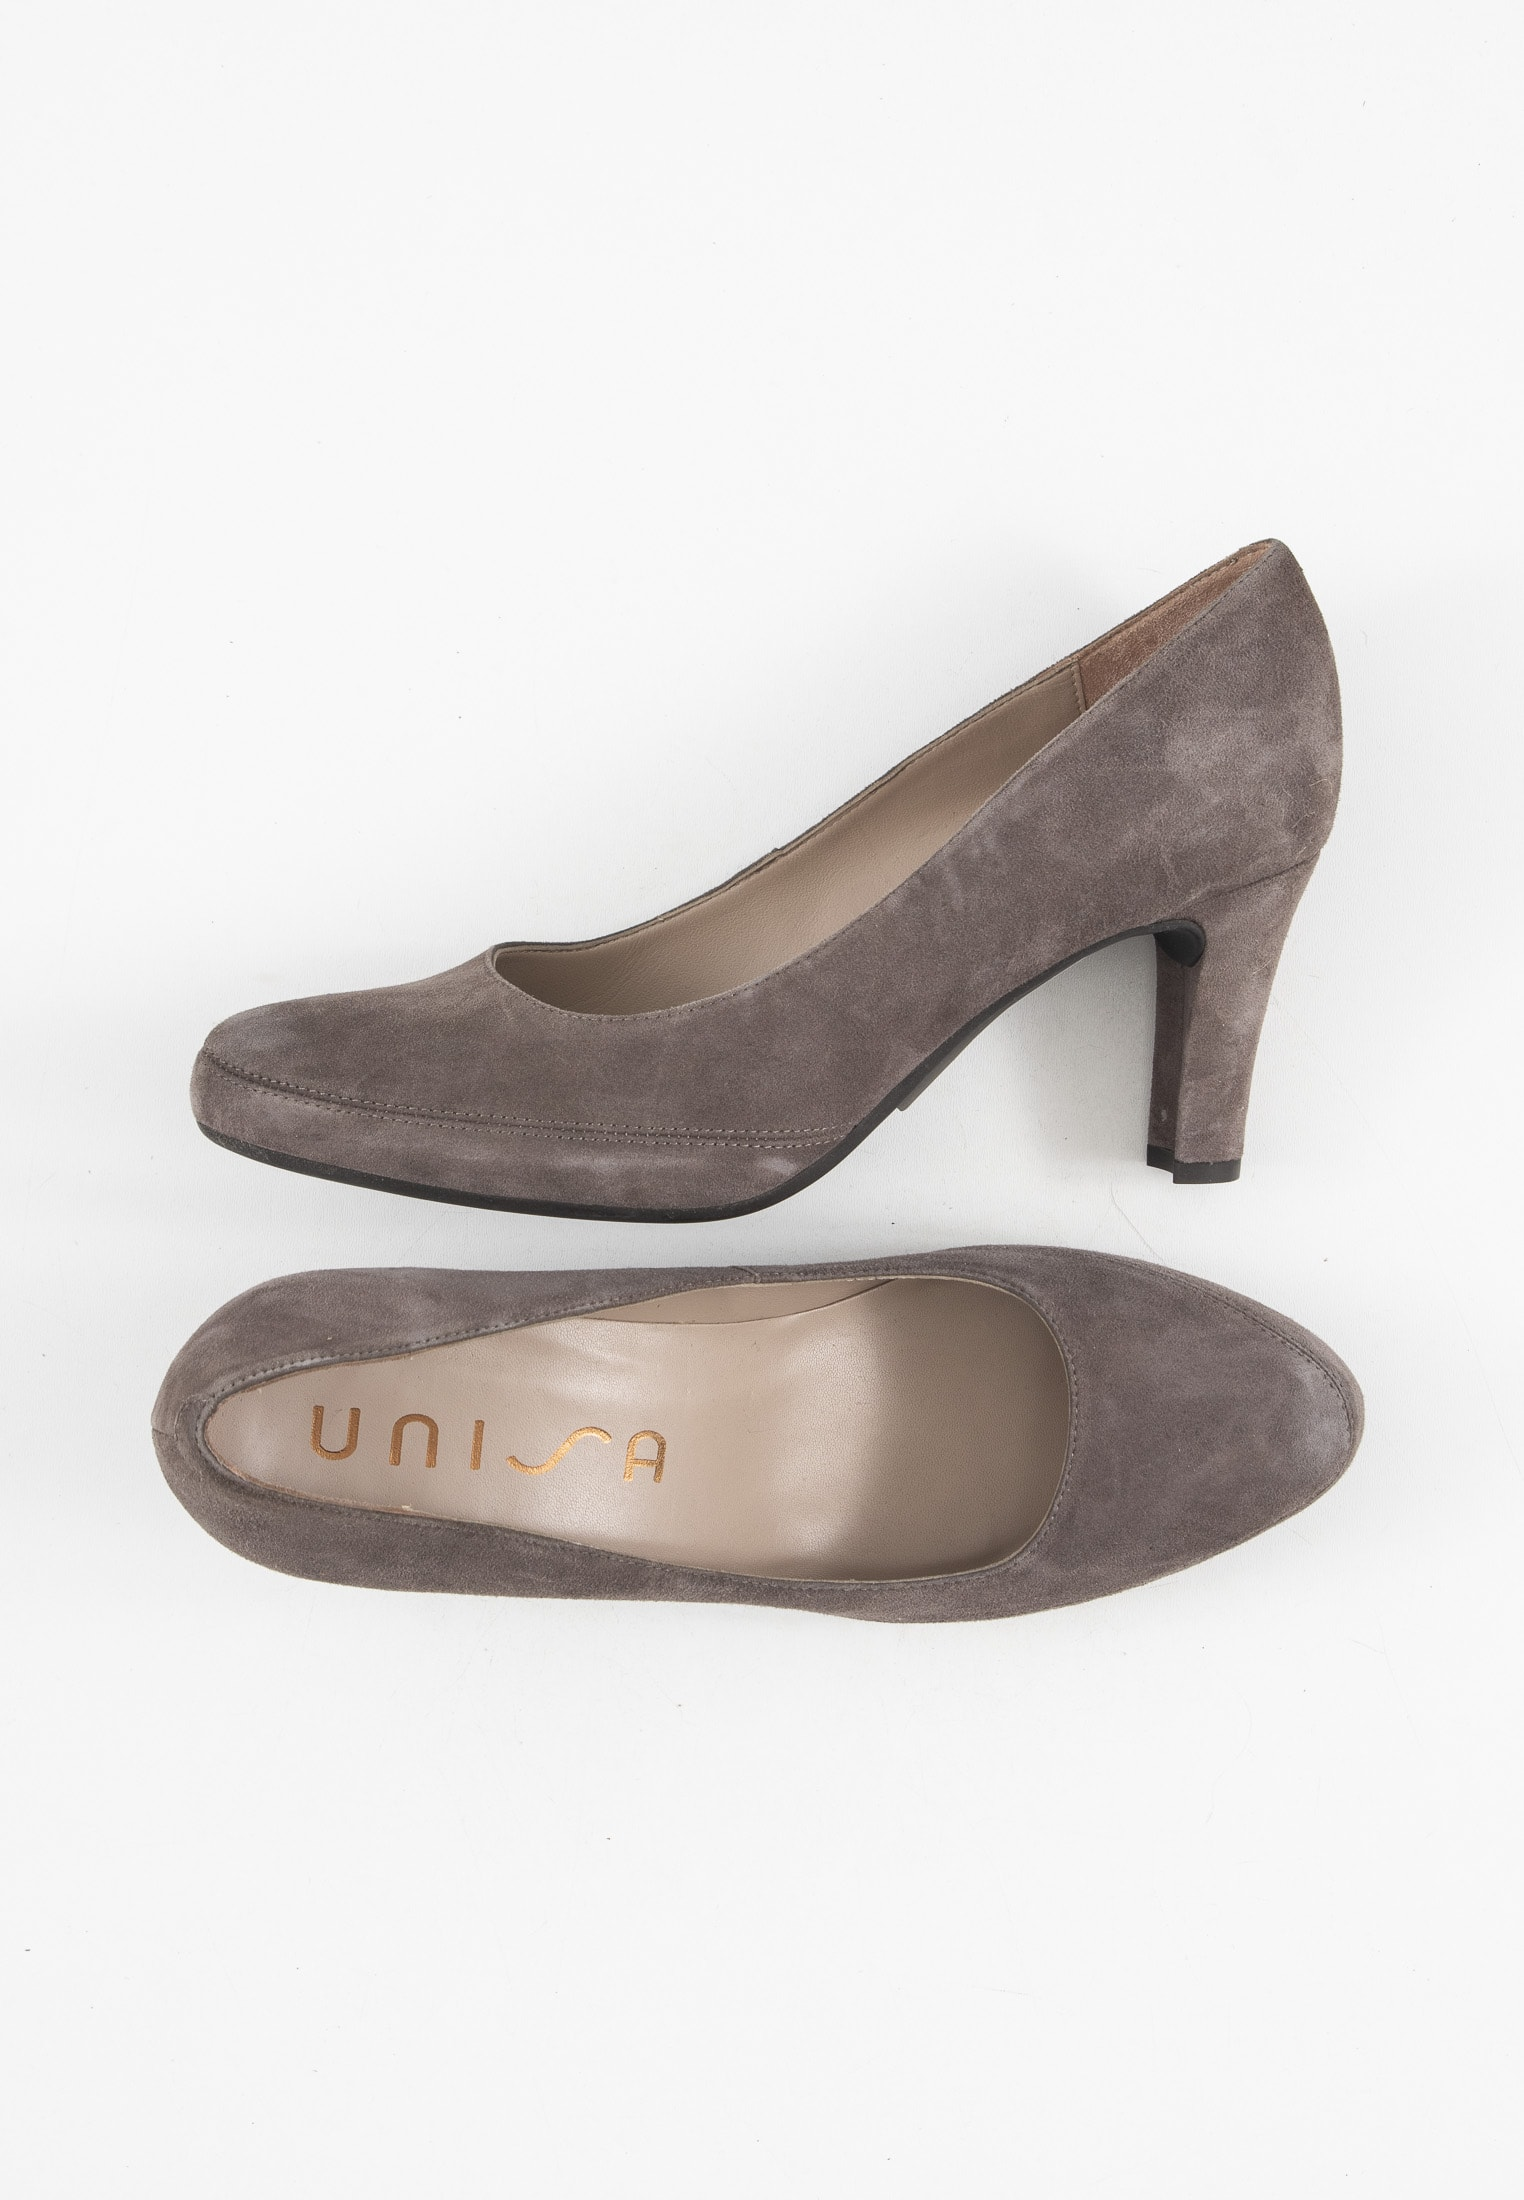 Unisa pumps, beige, 41